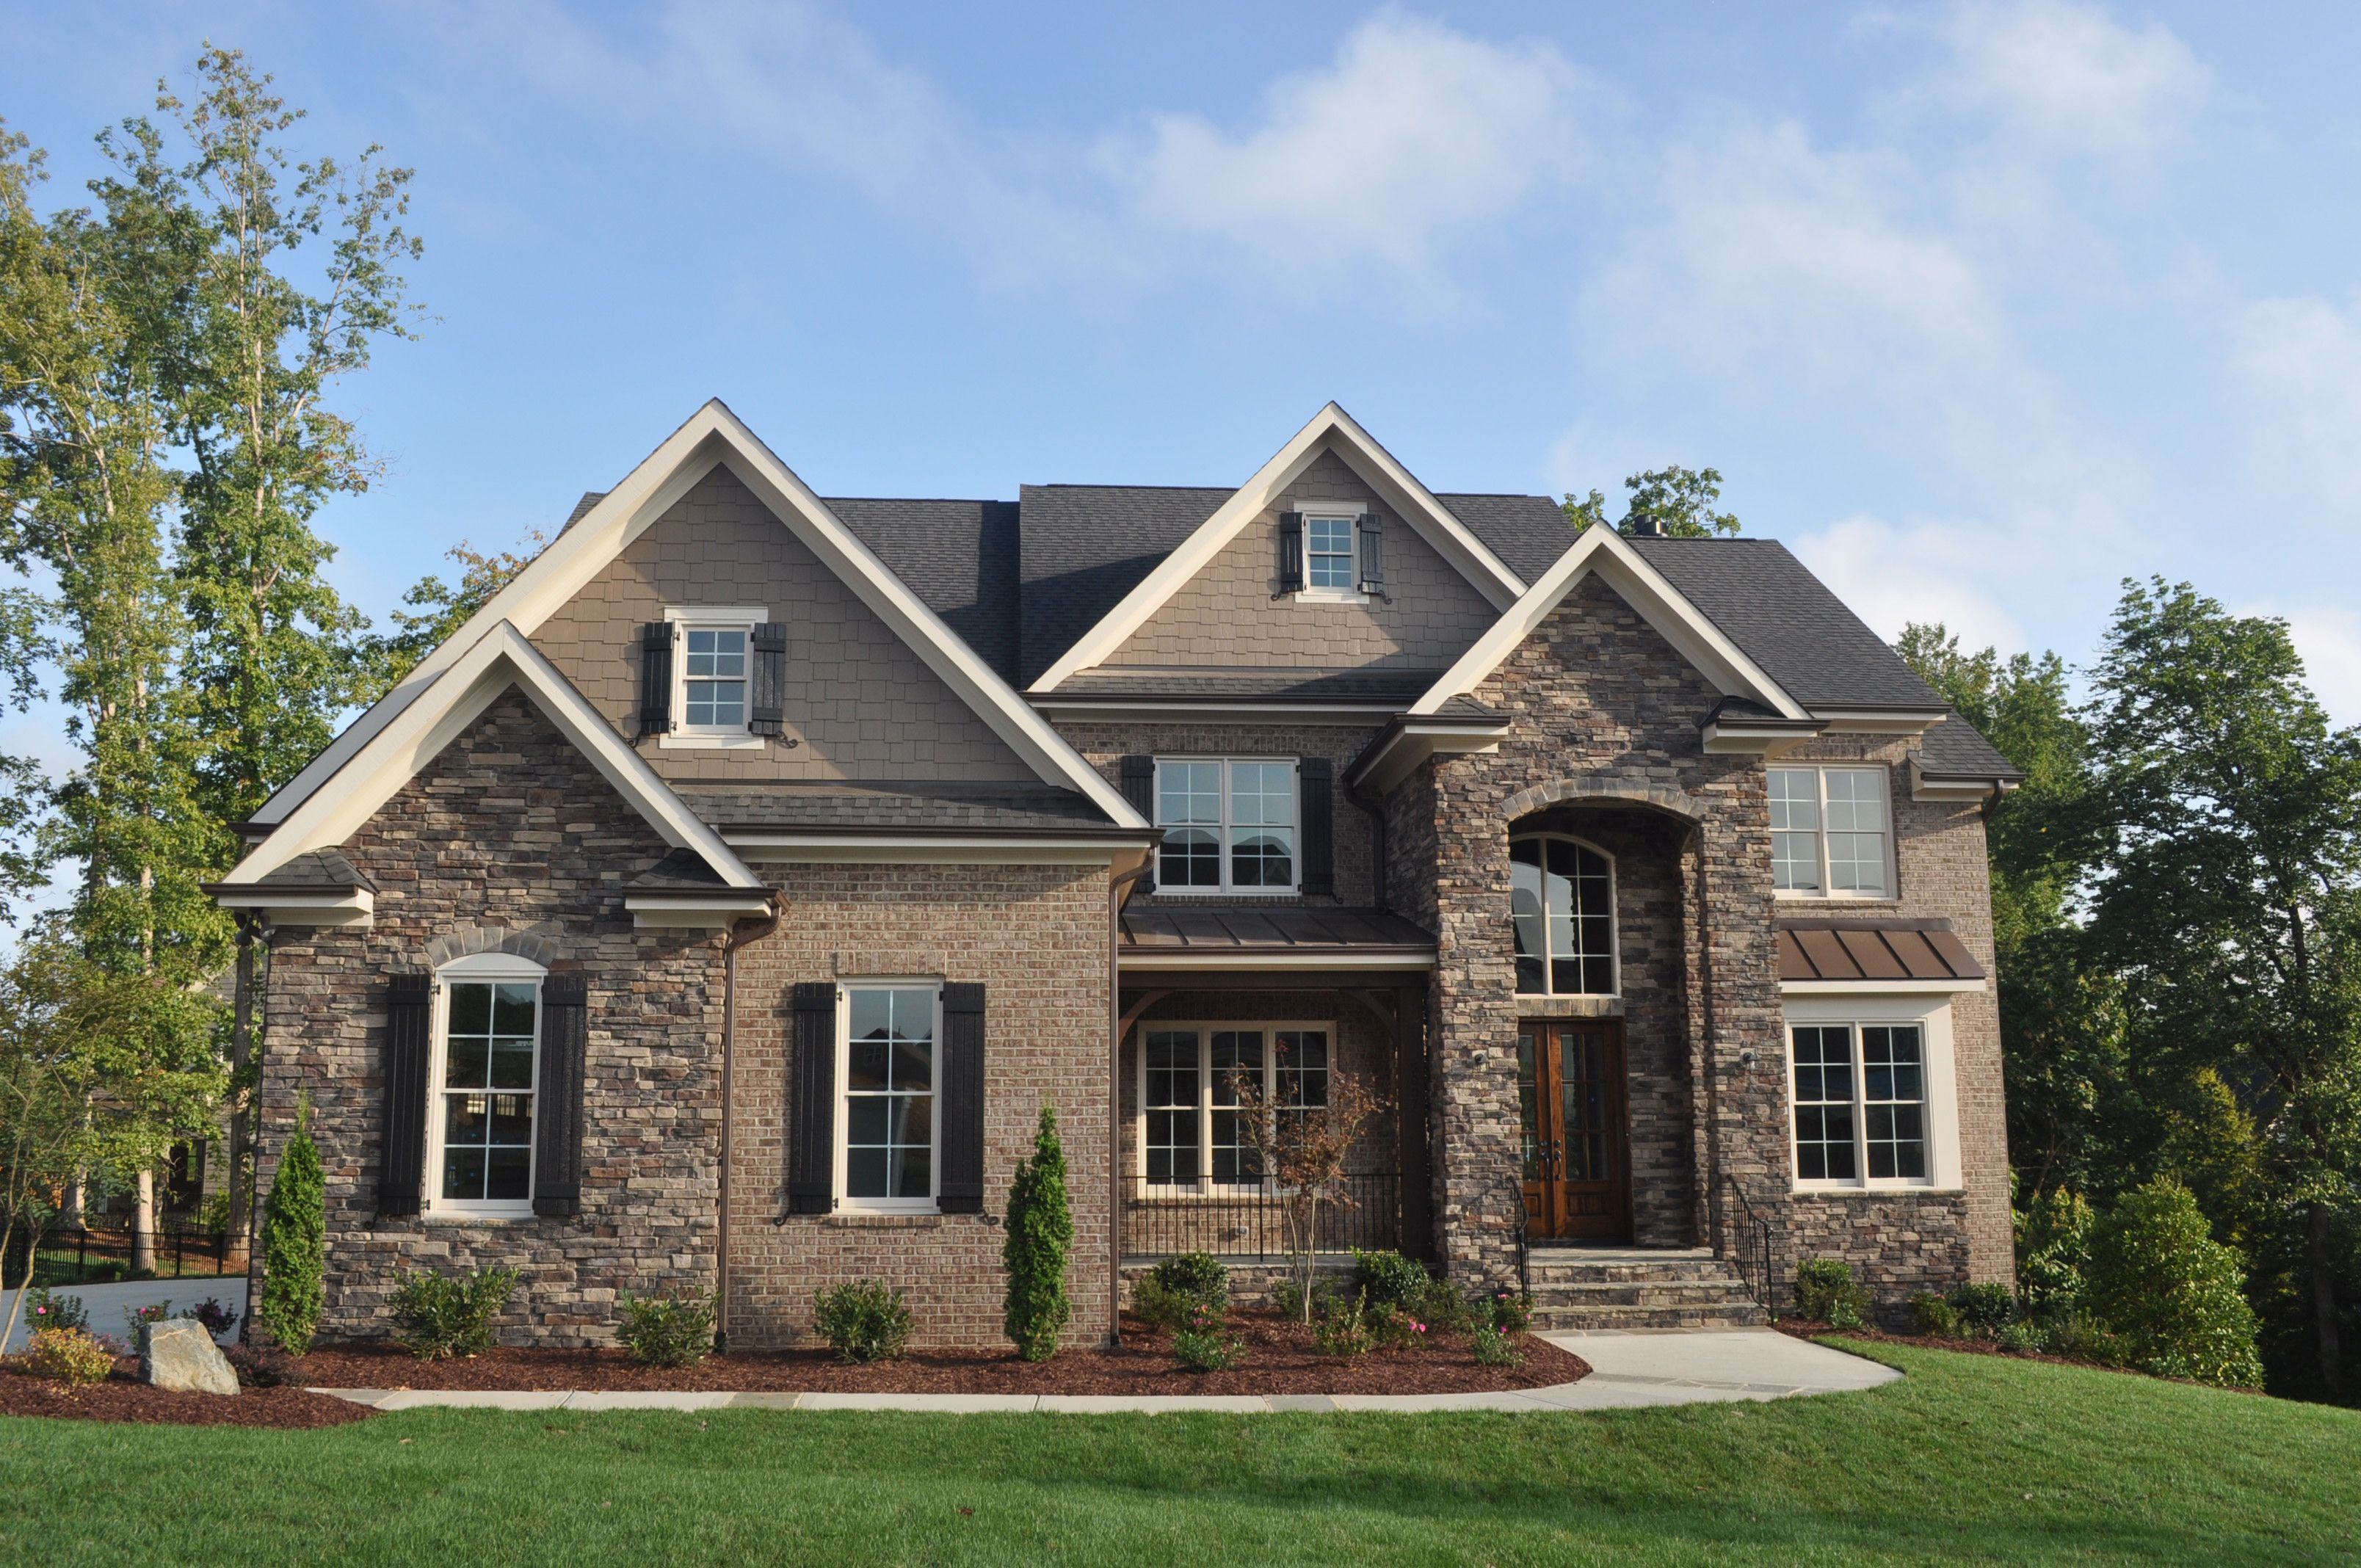 Brick and Stone Exterior with a little Siding  Exterior of New Home Ideas  Exterior house